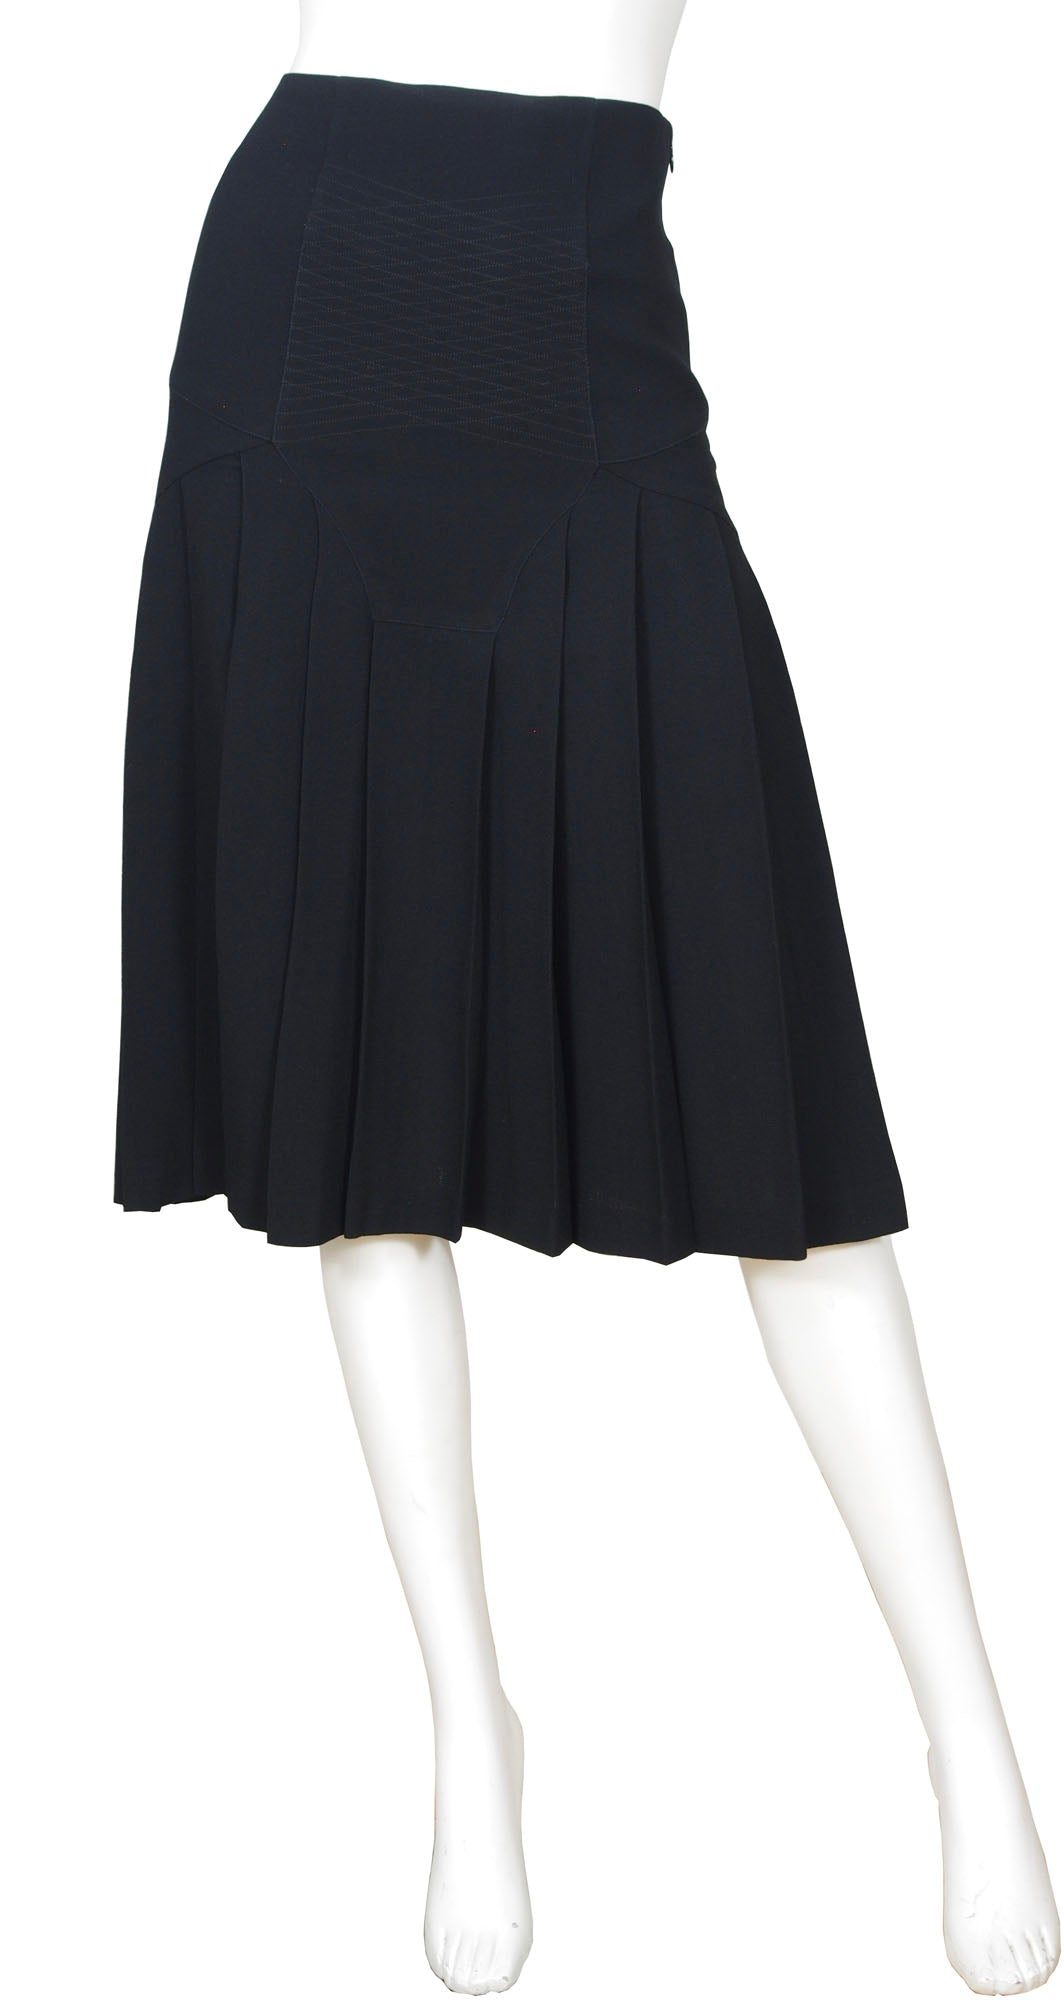 1990s Black Wool Crepe Pleated Knee Length Skirt